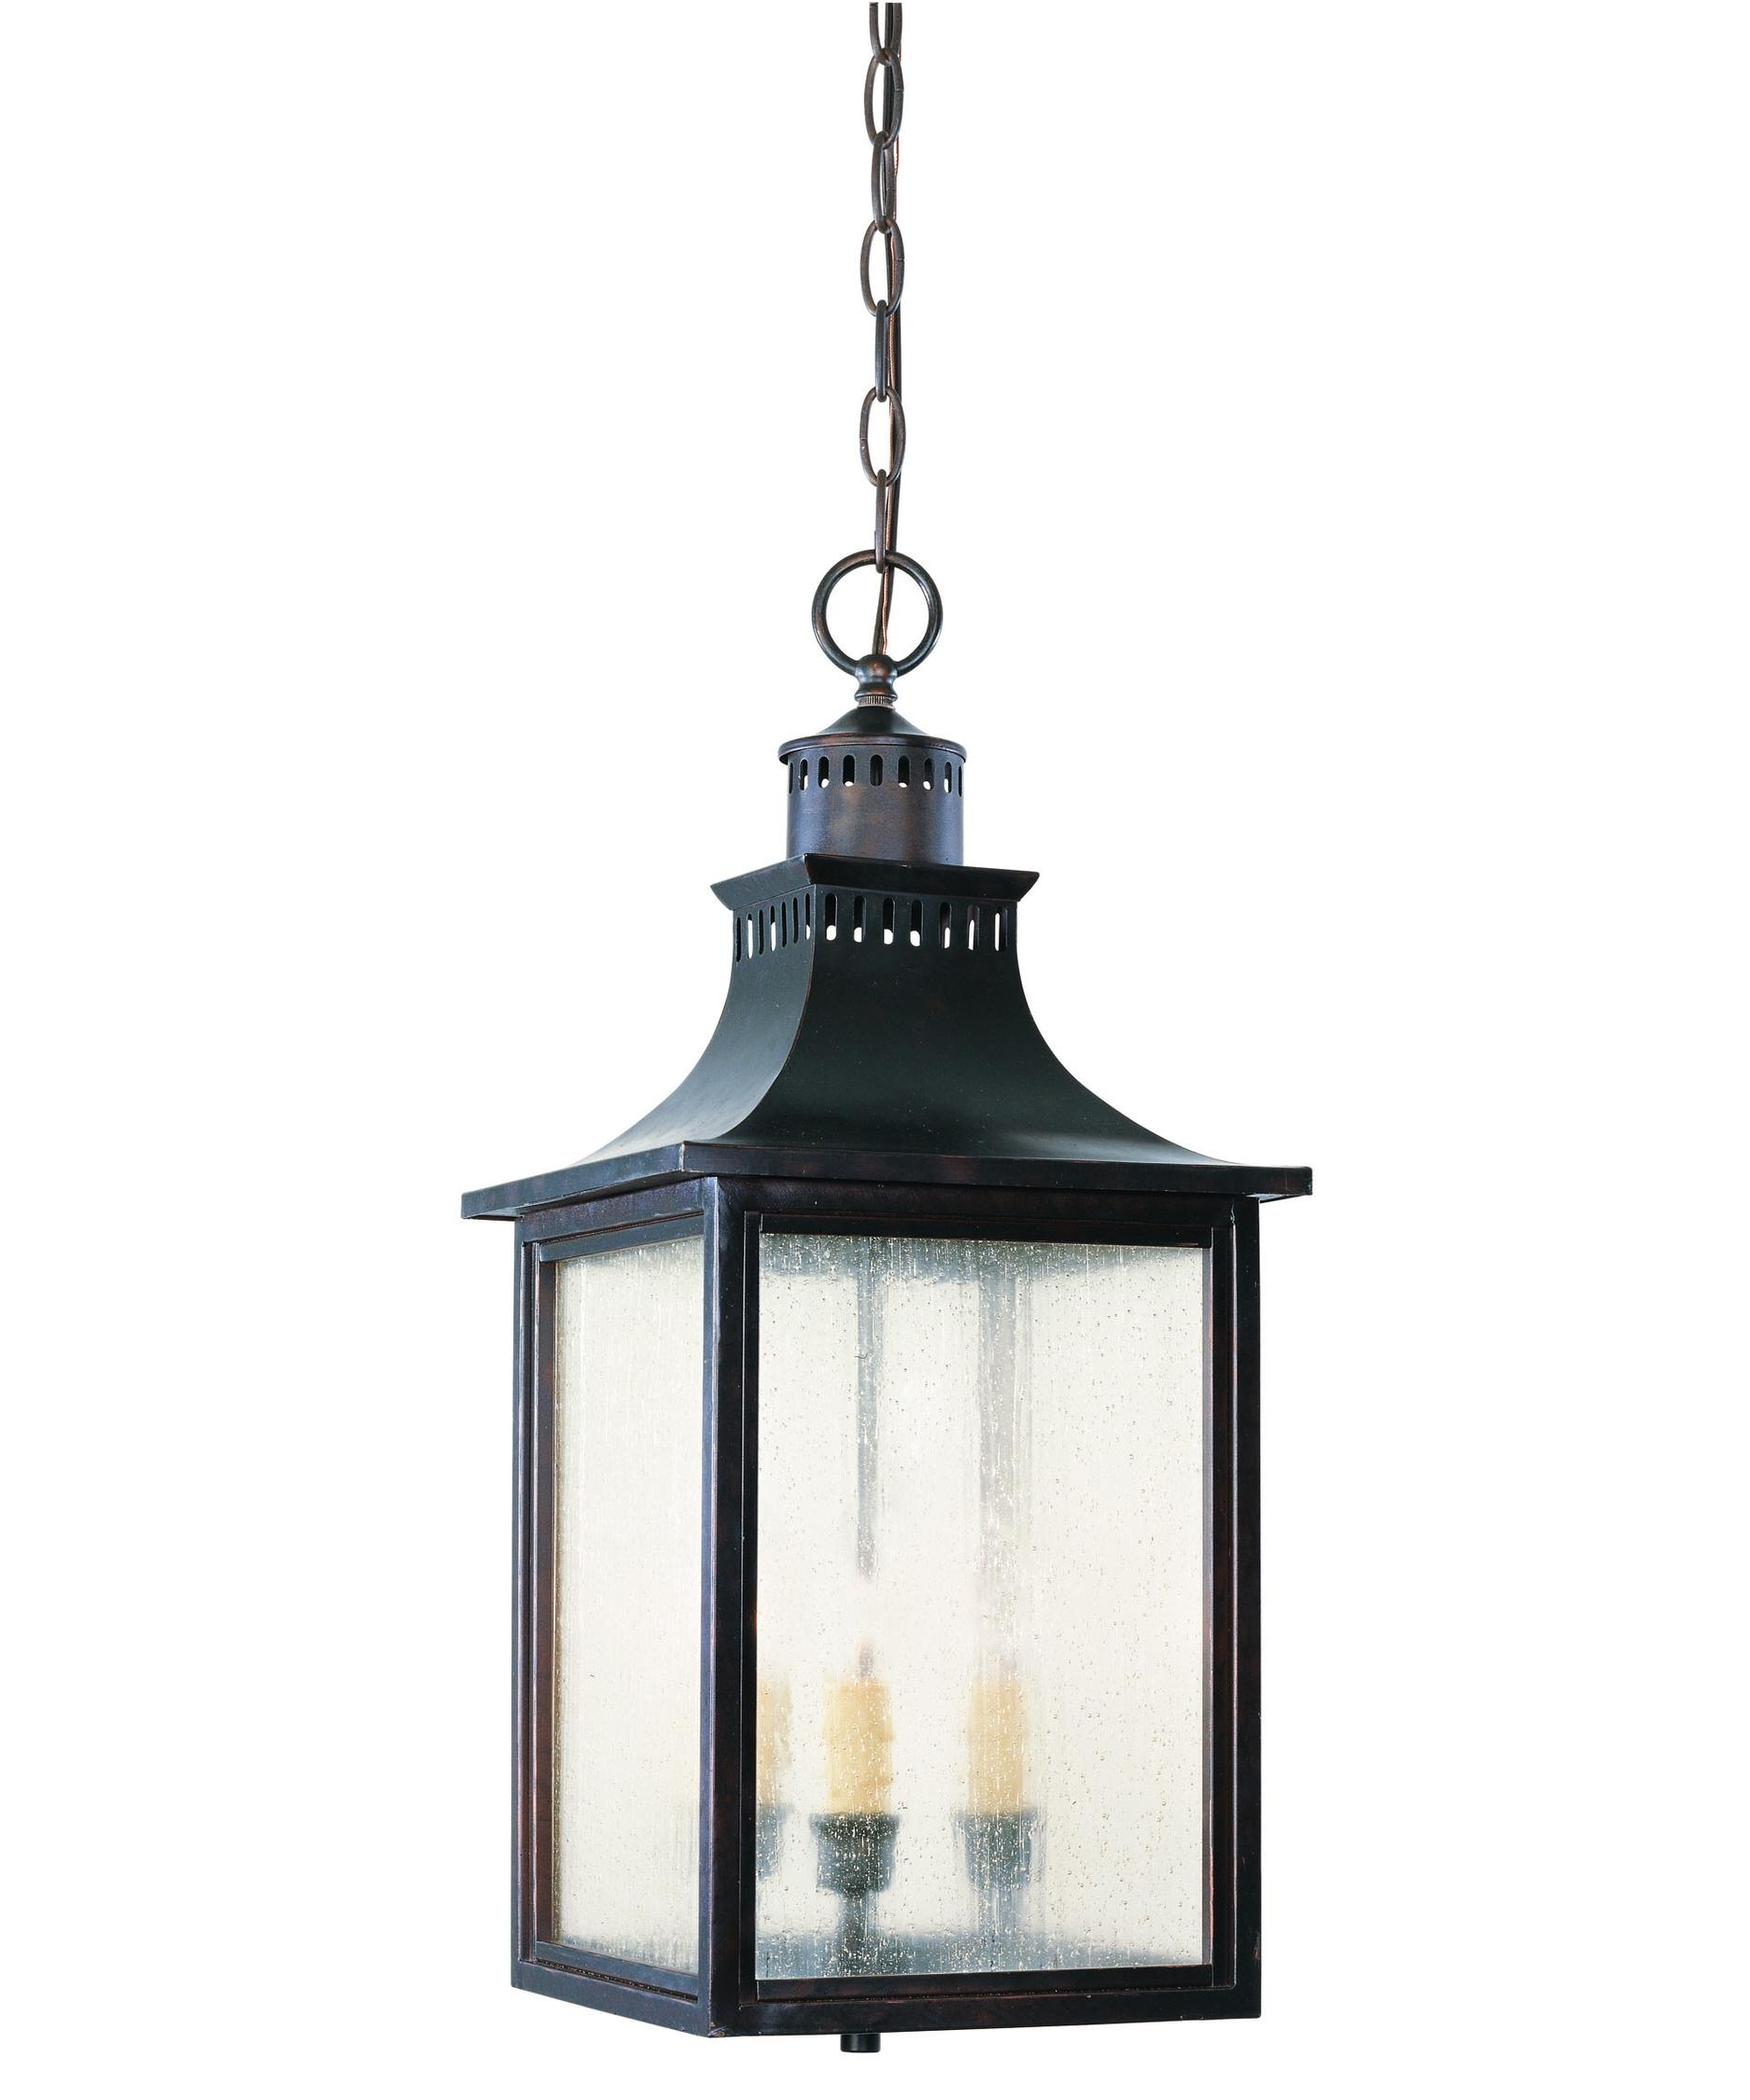 Popular Savoy House 5 256 Monte Grande 10 Inch Wide 3 Light Outdoor Hanging With Regard To Outdoor Weather Resistant Lanterns (View 17 of 20)